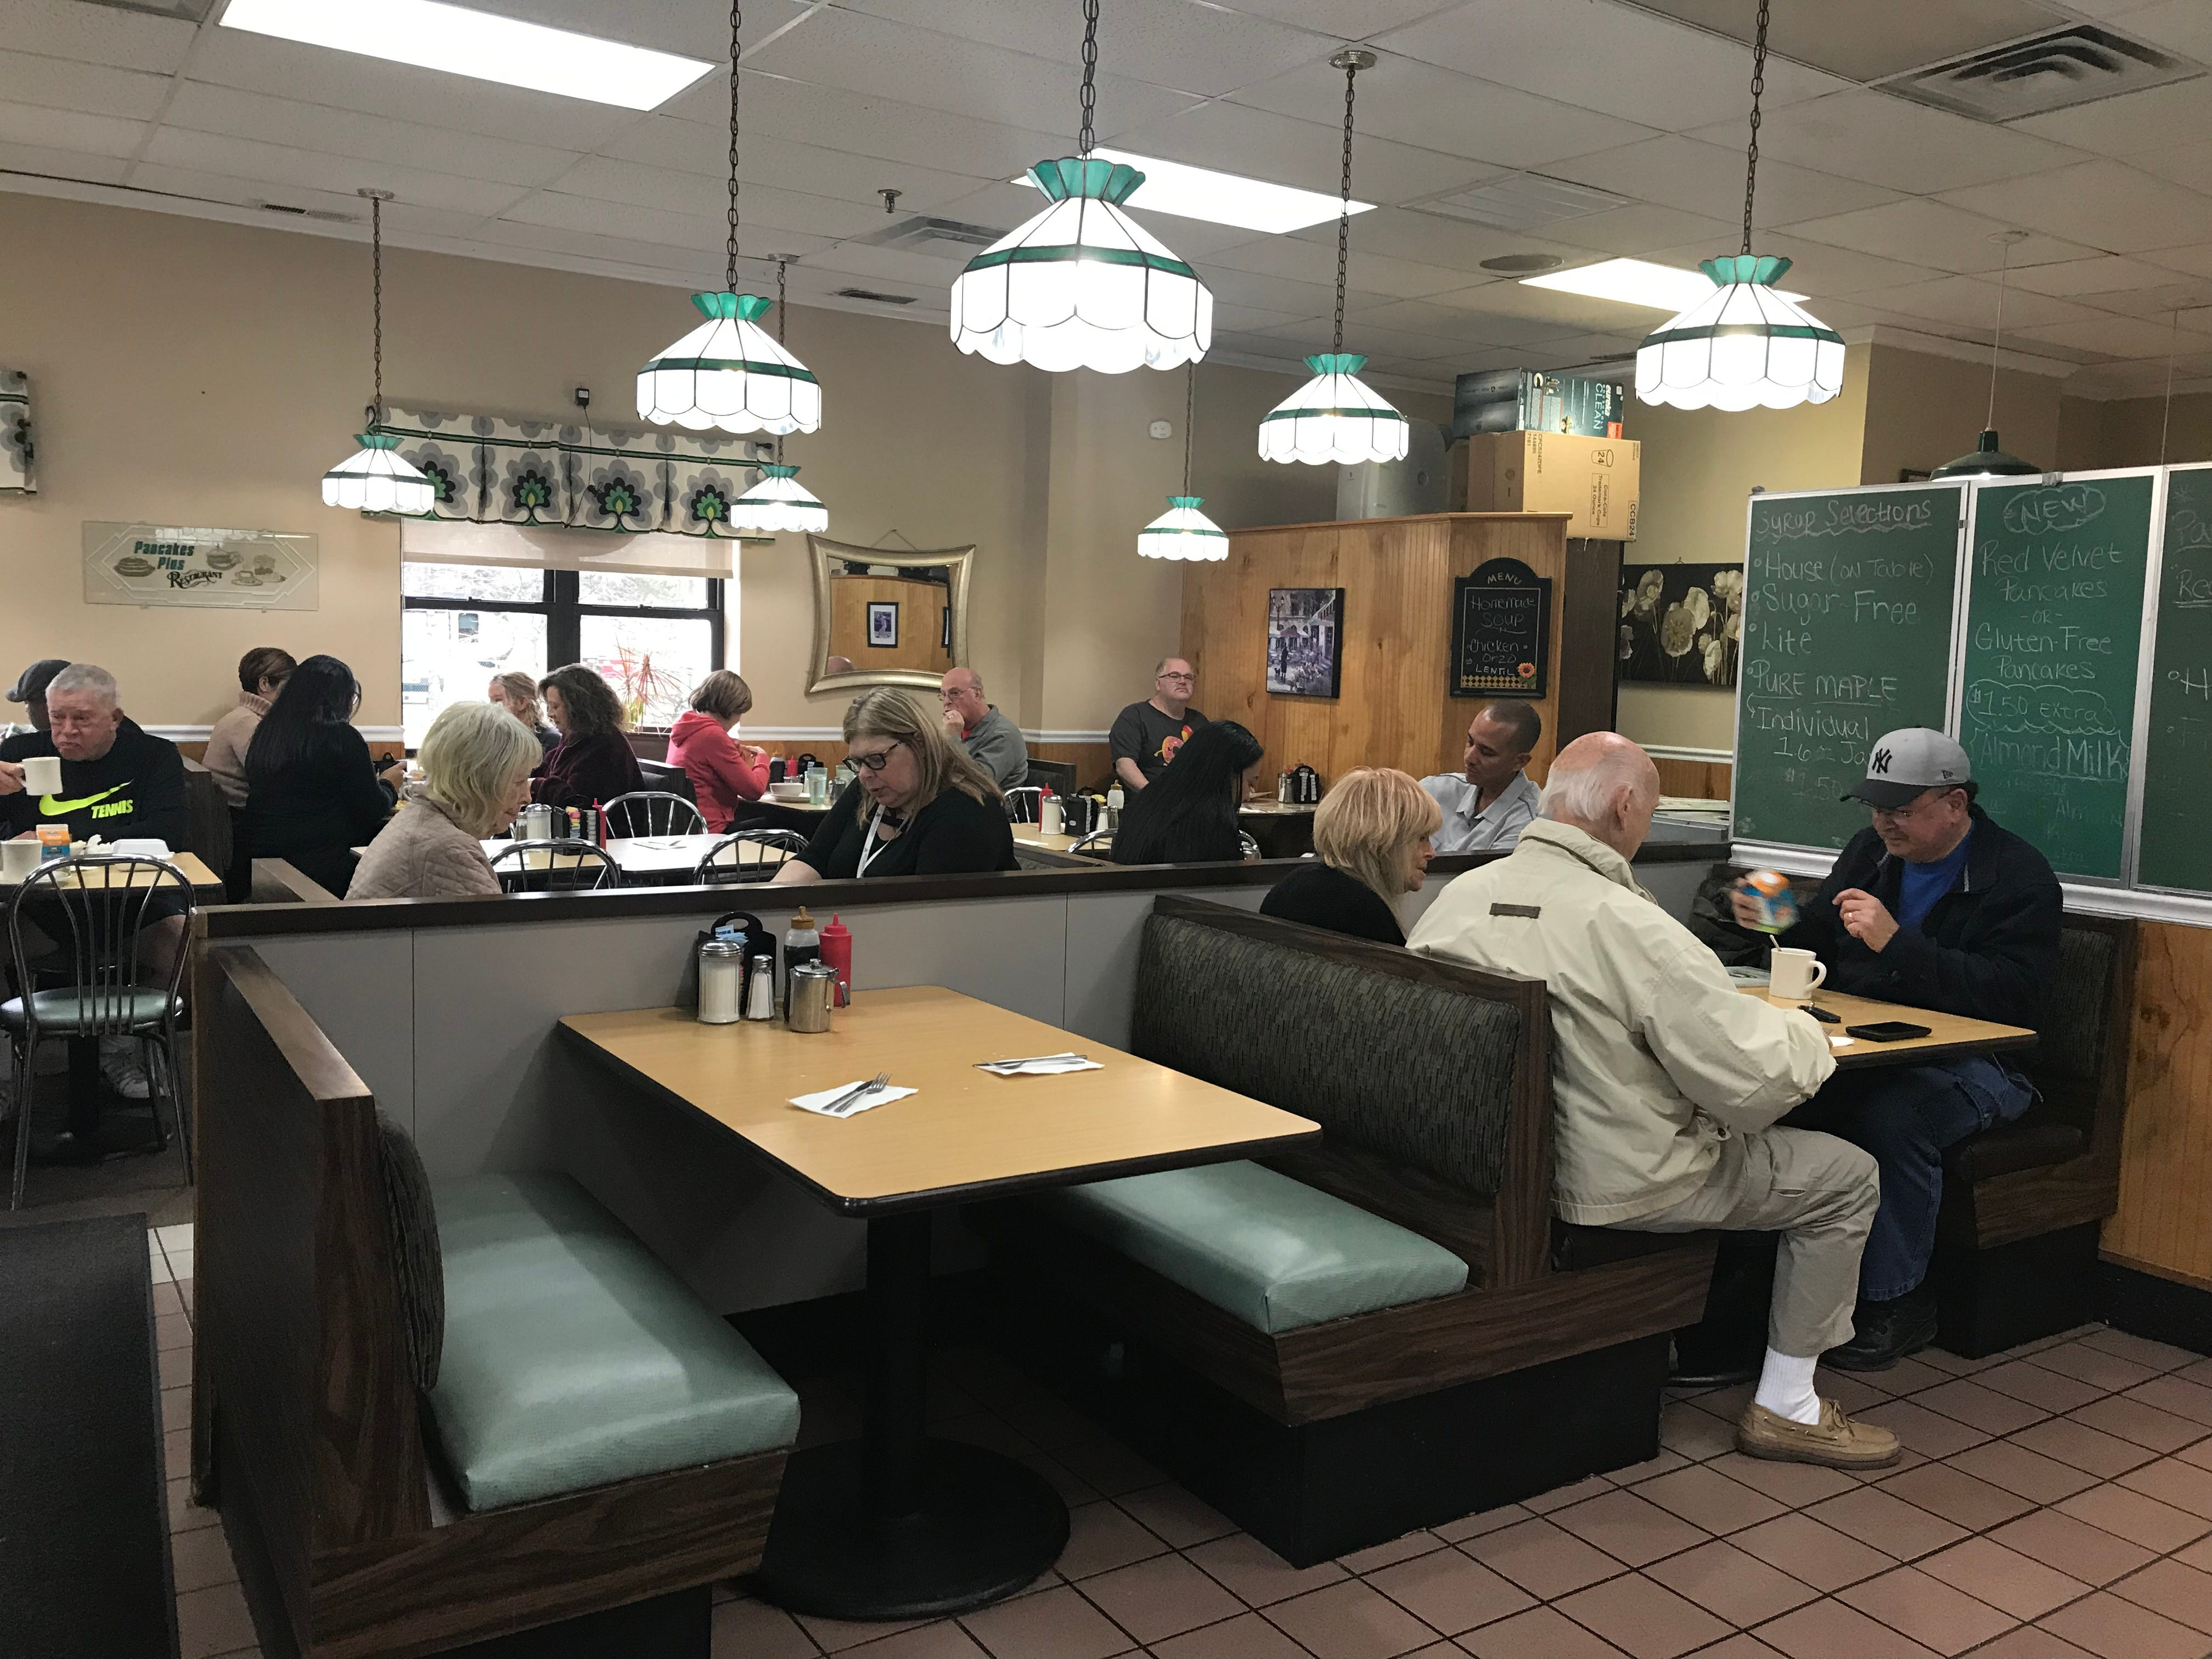 The interior of Pancakes Plus in Nanuet. Photographed Nov. 30, 2018.